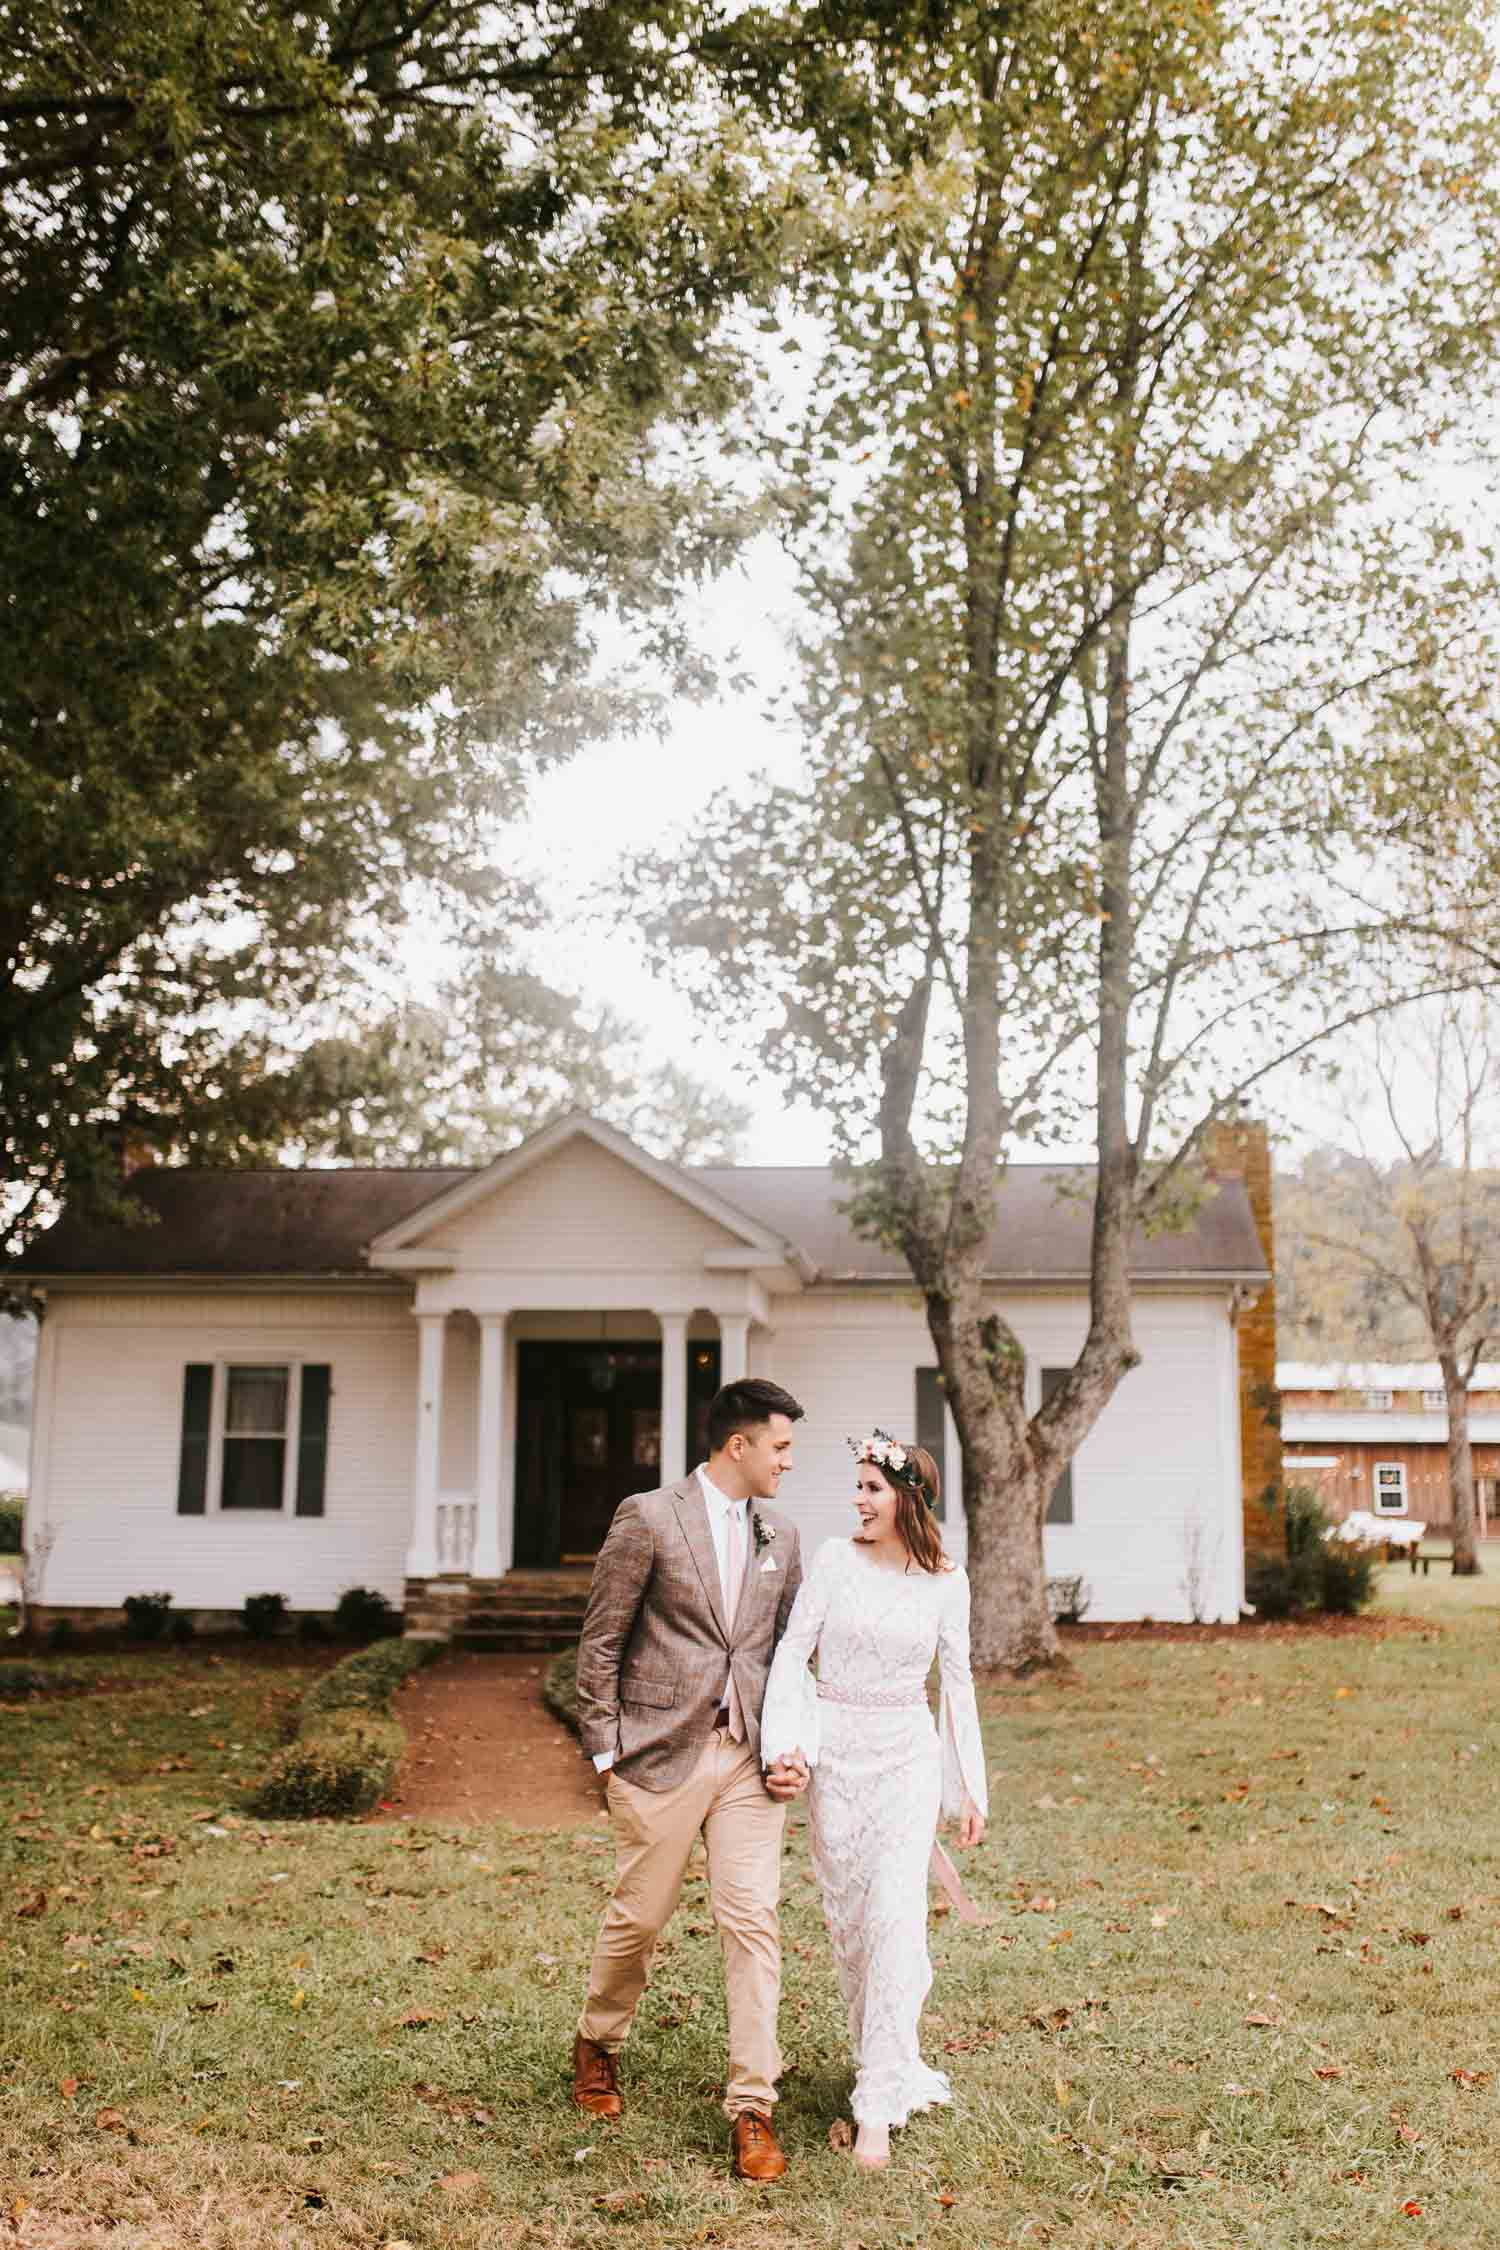 NashvilleWeddingPhotographer (9 of 44).jpg